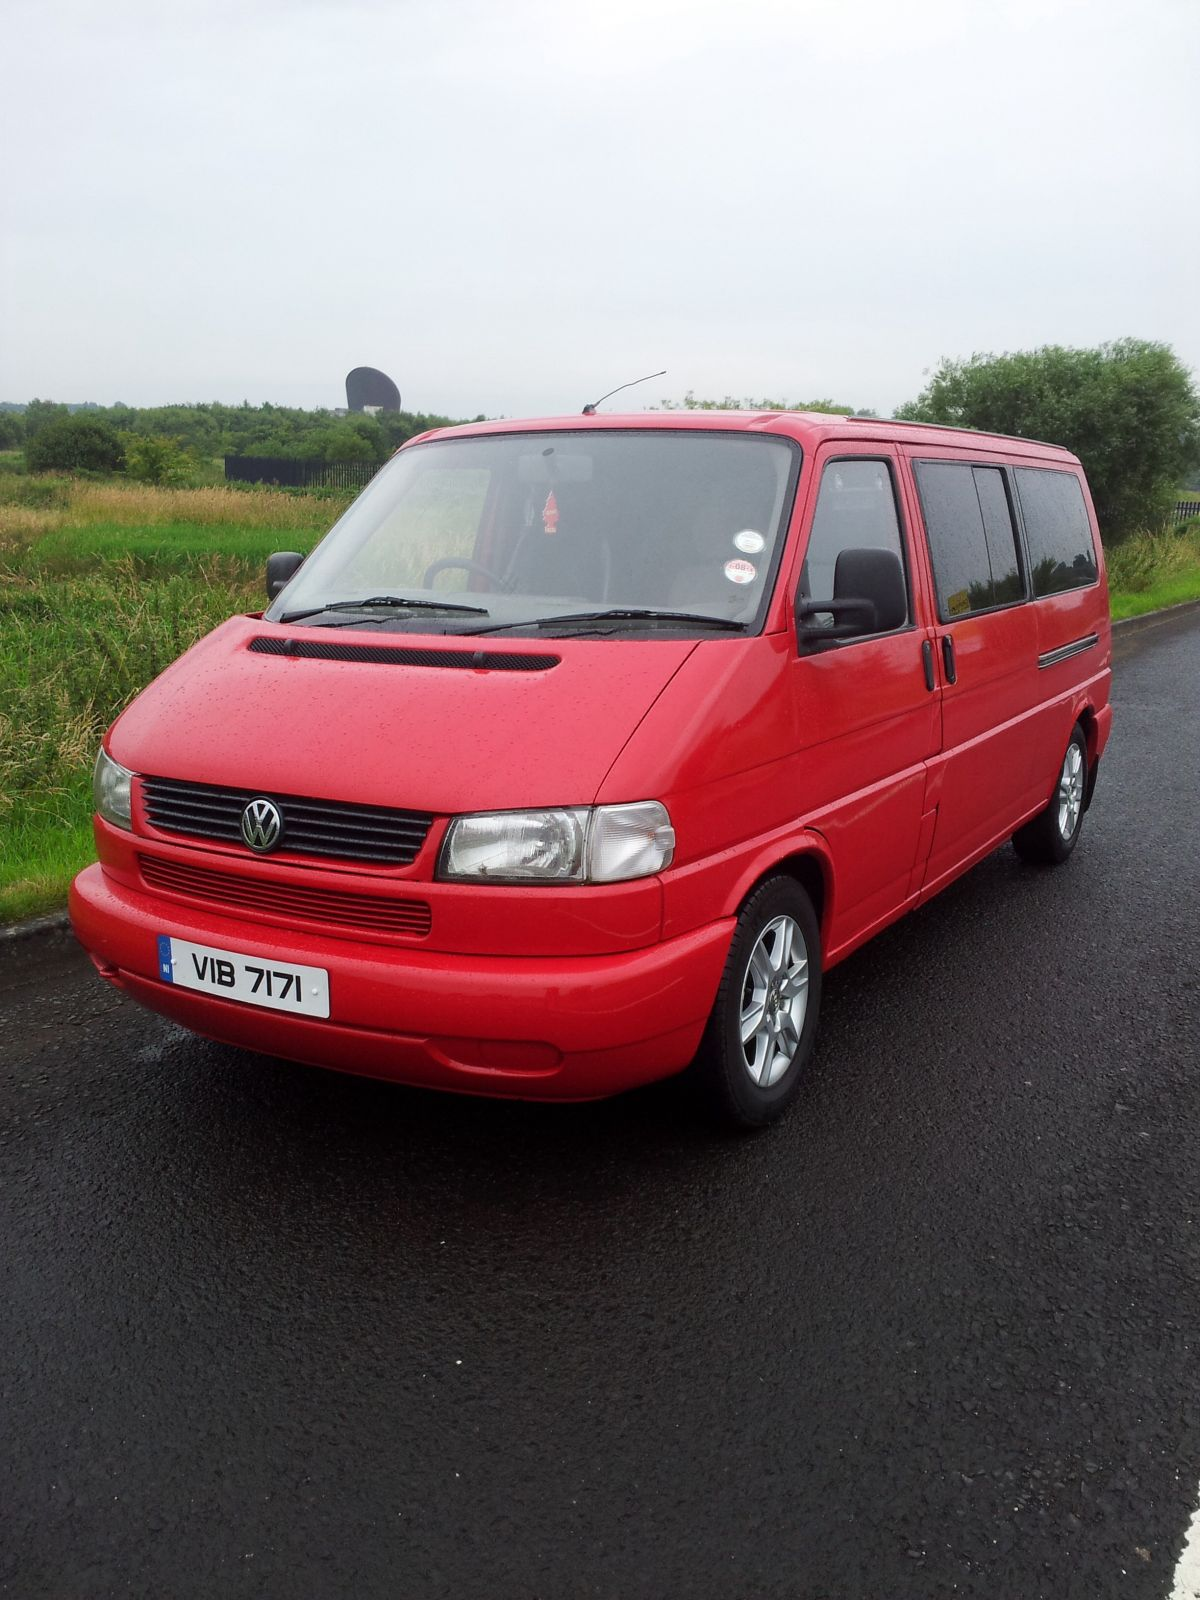 Volkswagen Caravelle 2.4 1997 photo - 1